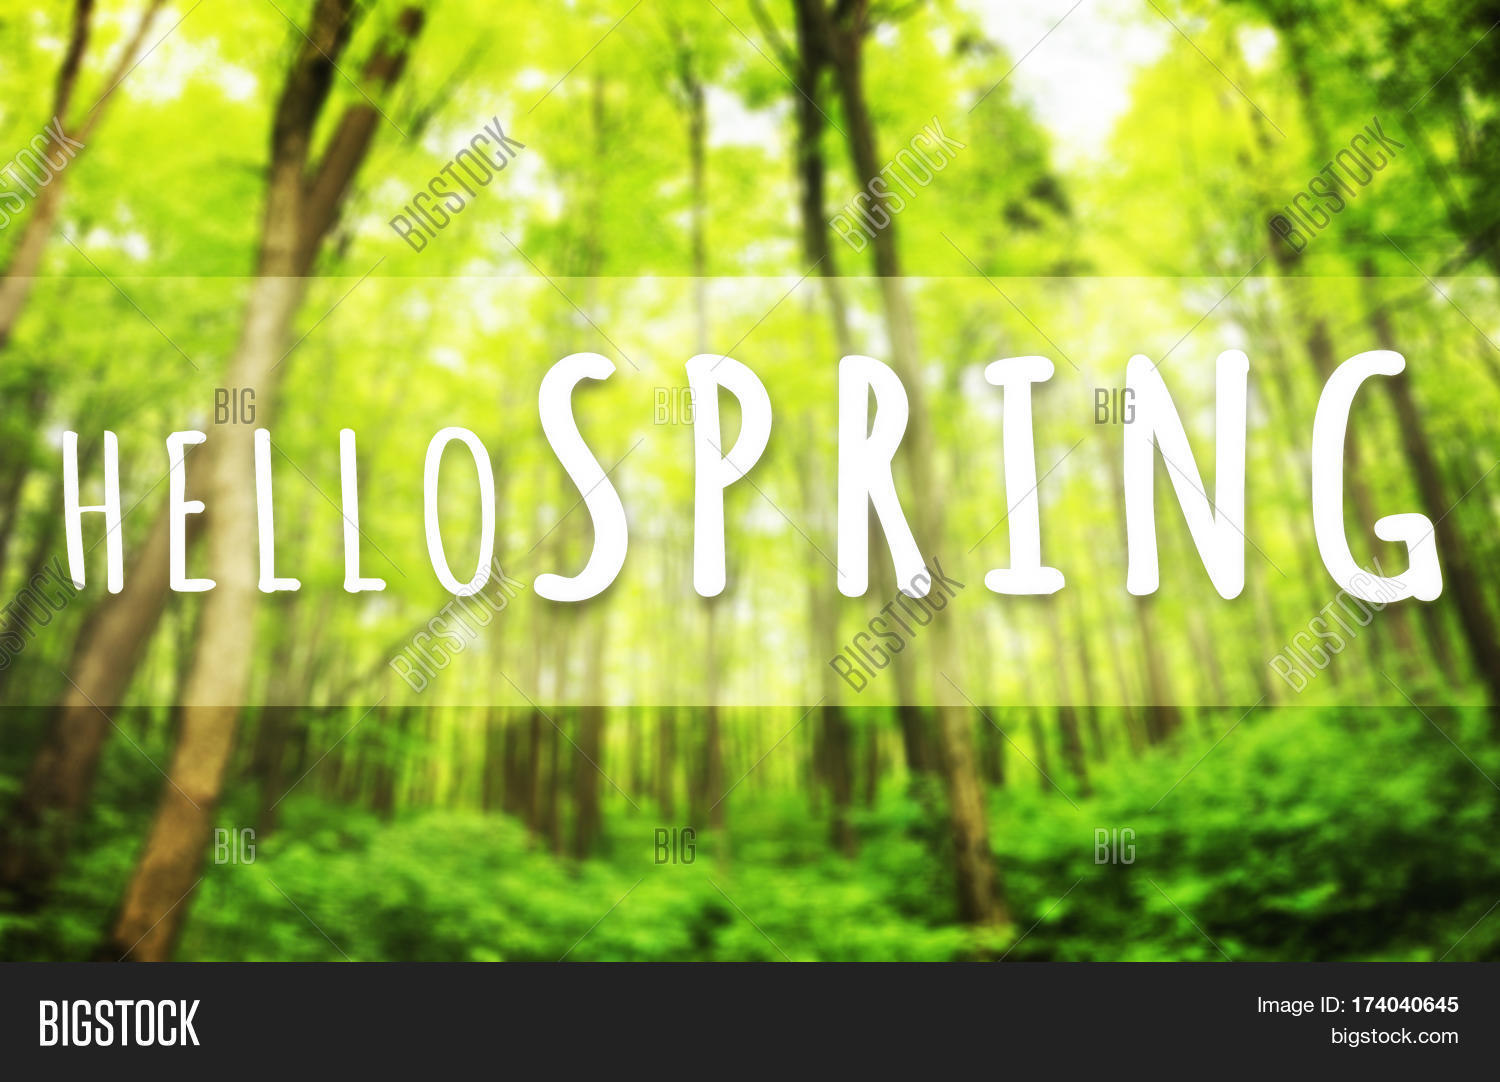 Beautiful greeting card words image photo bigstock beautiful greeting card with words welcome spring m4hsunfo